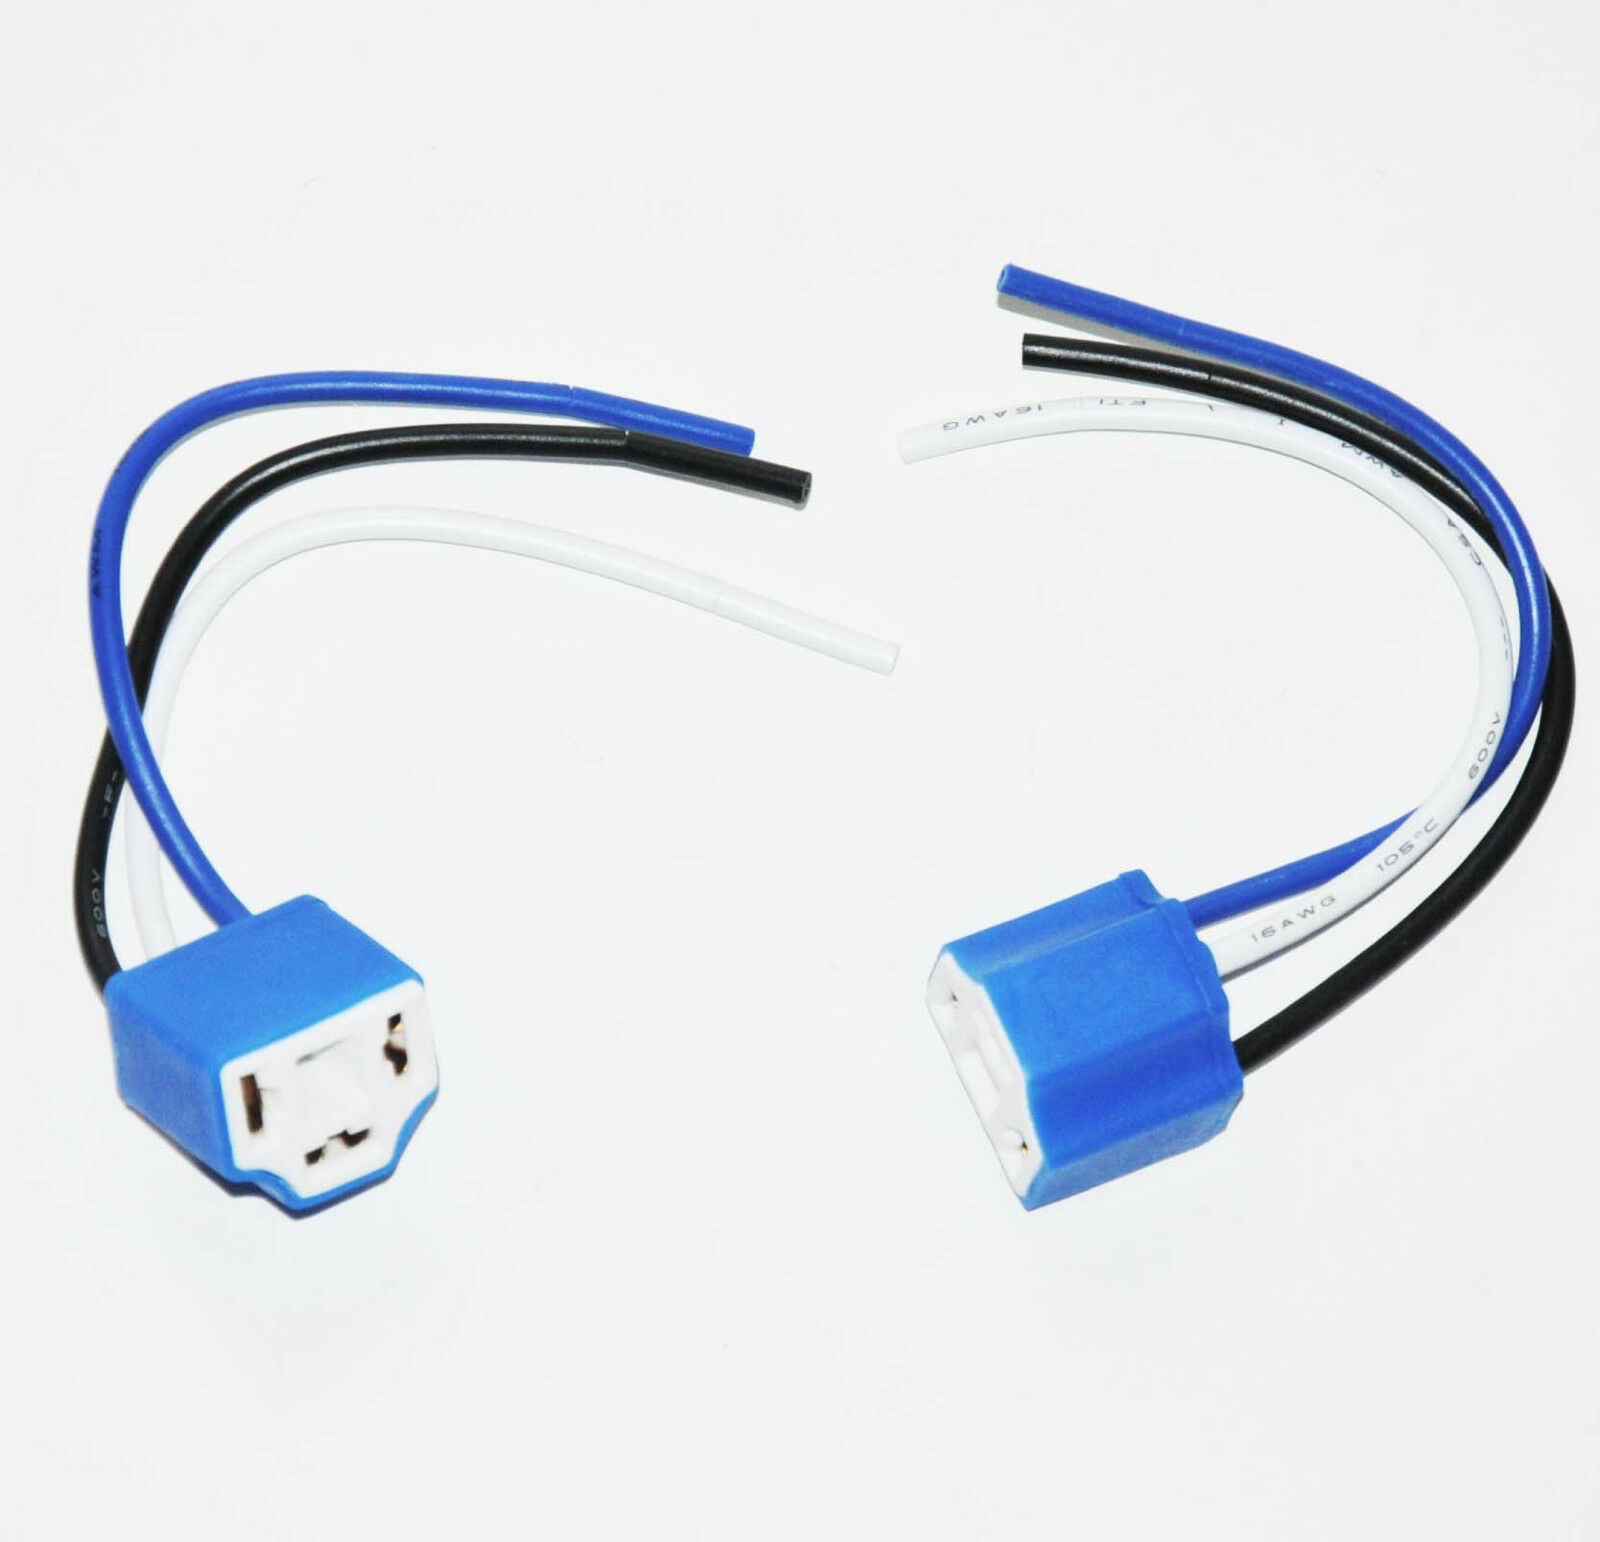 Two Wire Pigtail Female 9003 Hb2 H4 Hs1 Harness Ceramic Wiring An Outlet 1 Of 10free Shipping Connector Socket